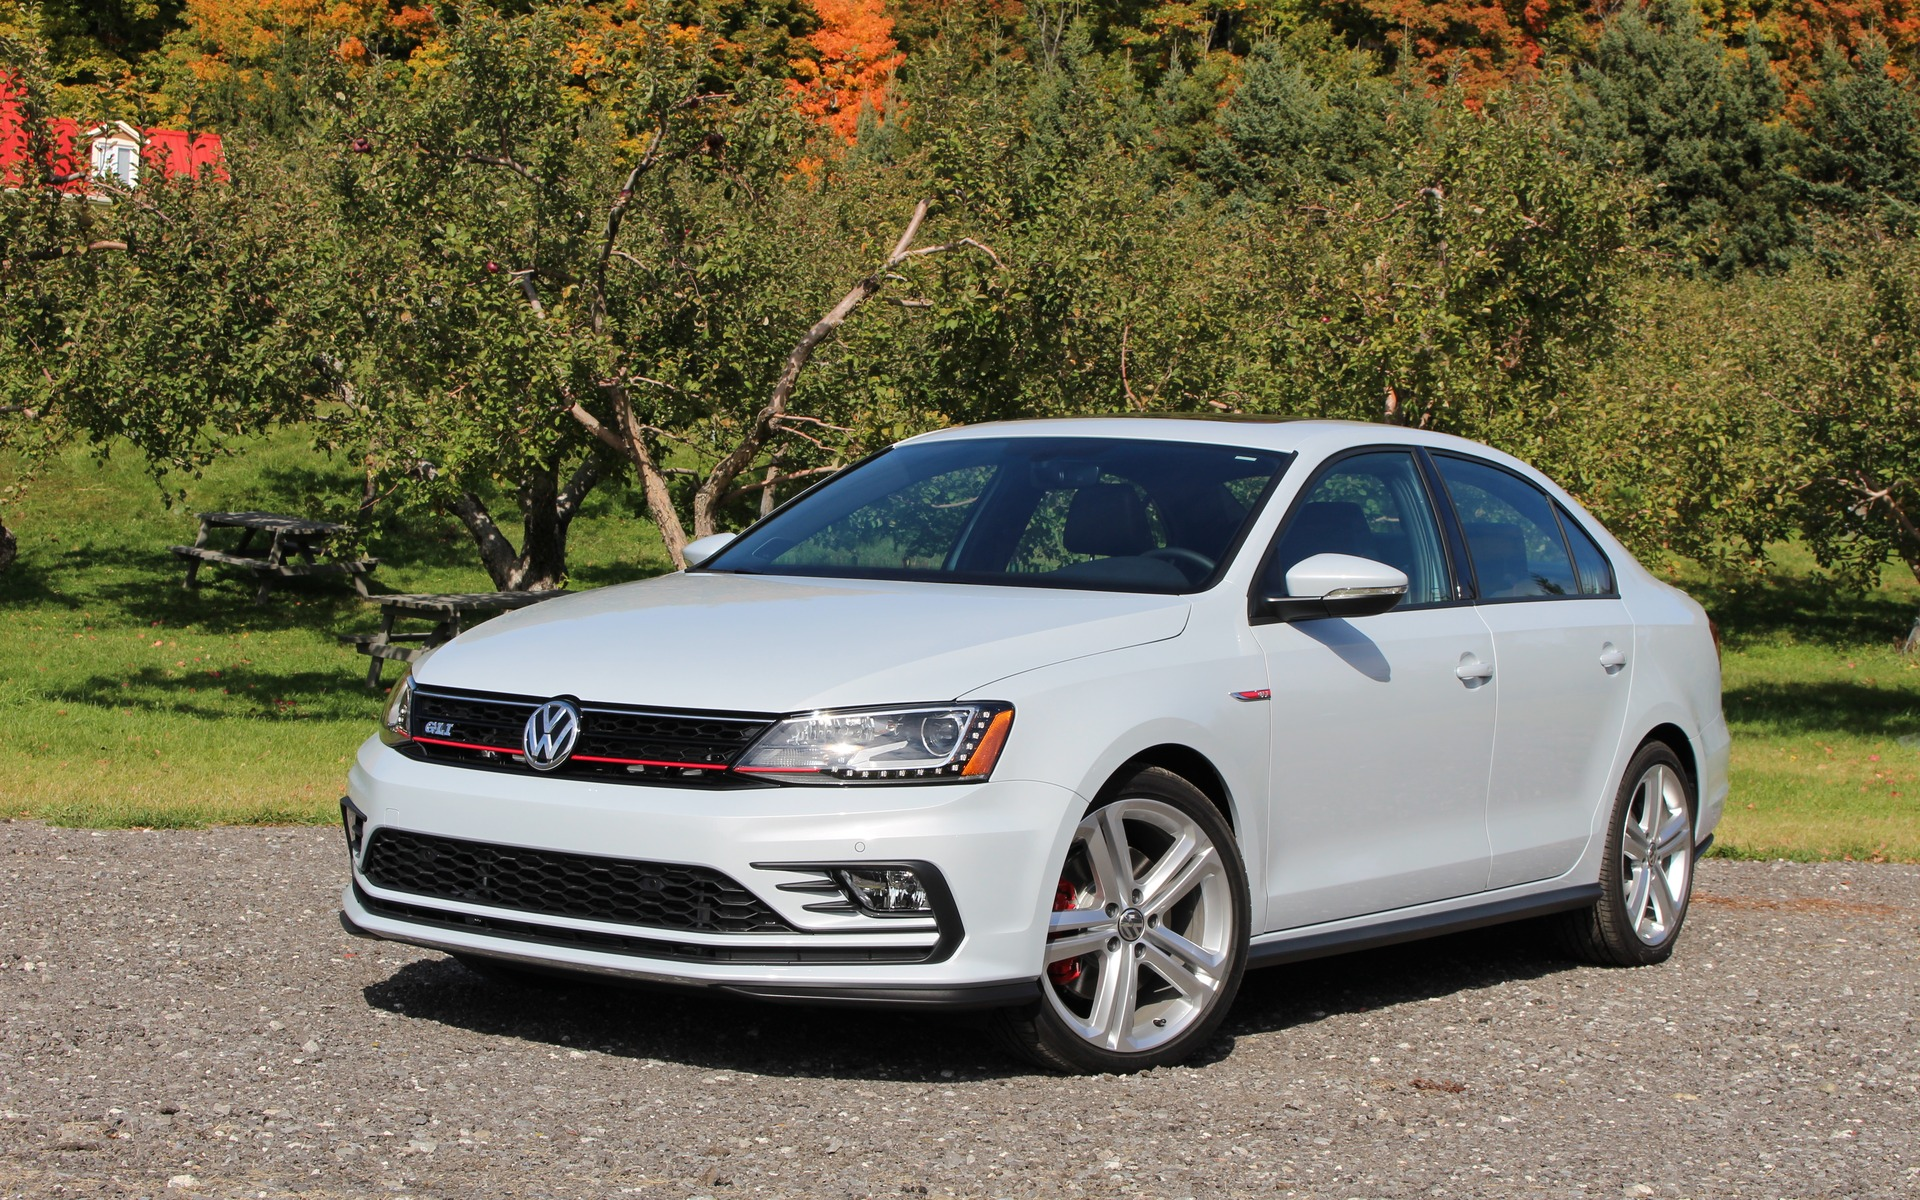 2017 Volkswagen Jetta GLI: No Longer the Bargain it Used ...